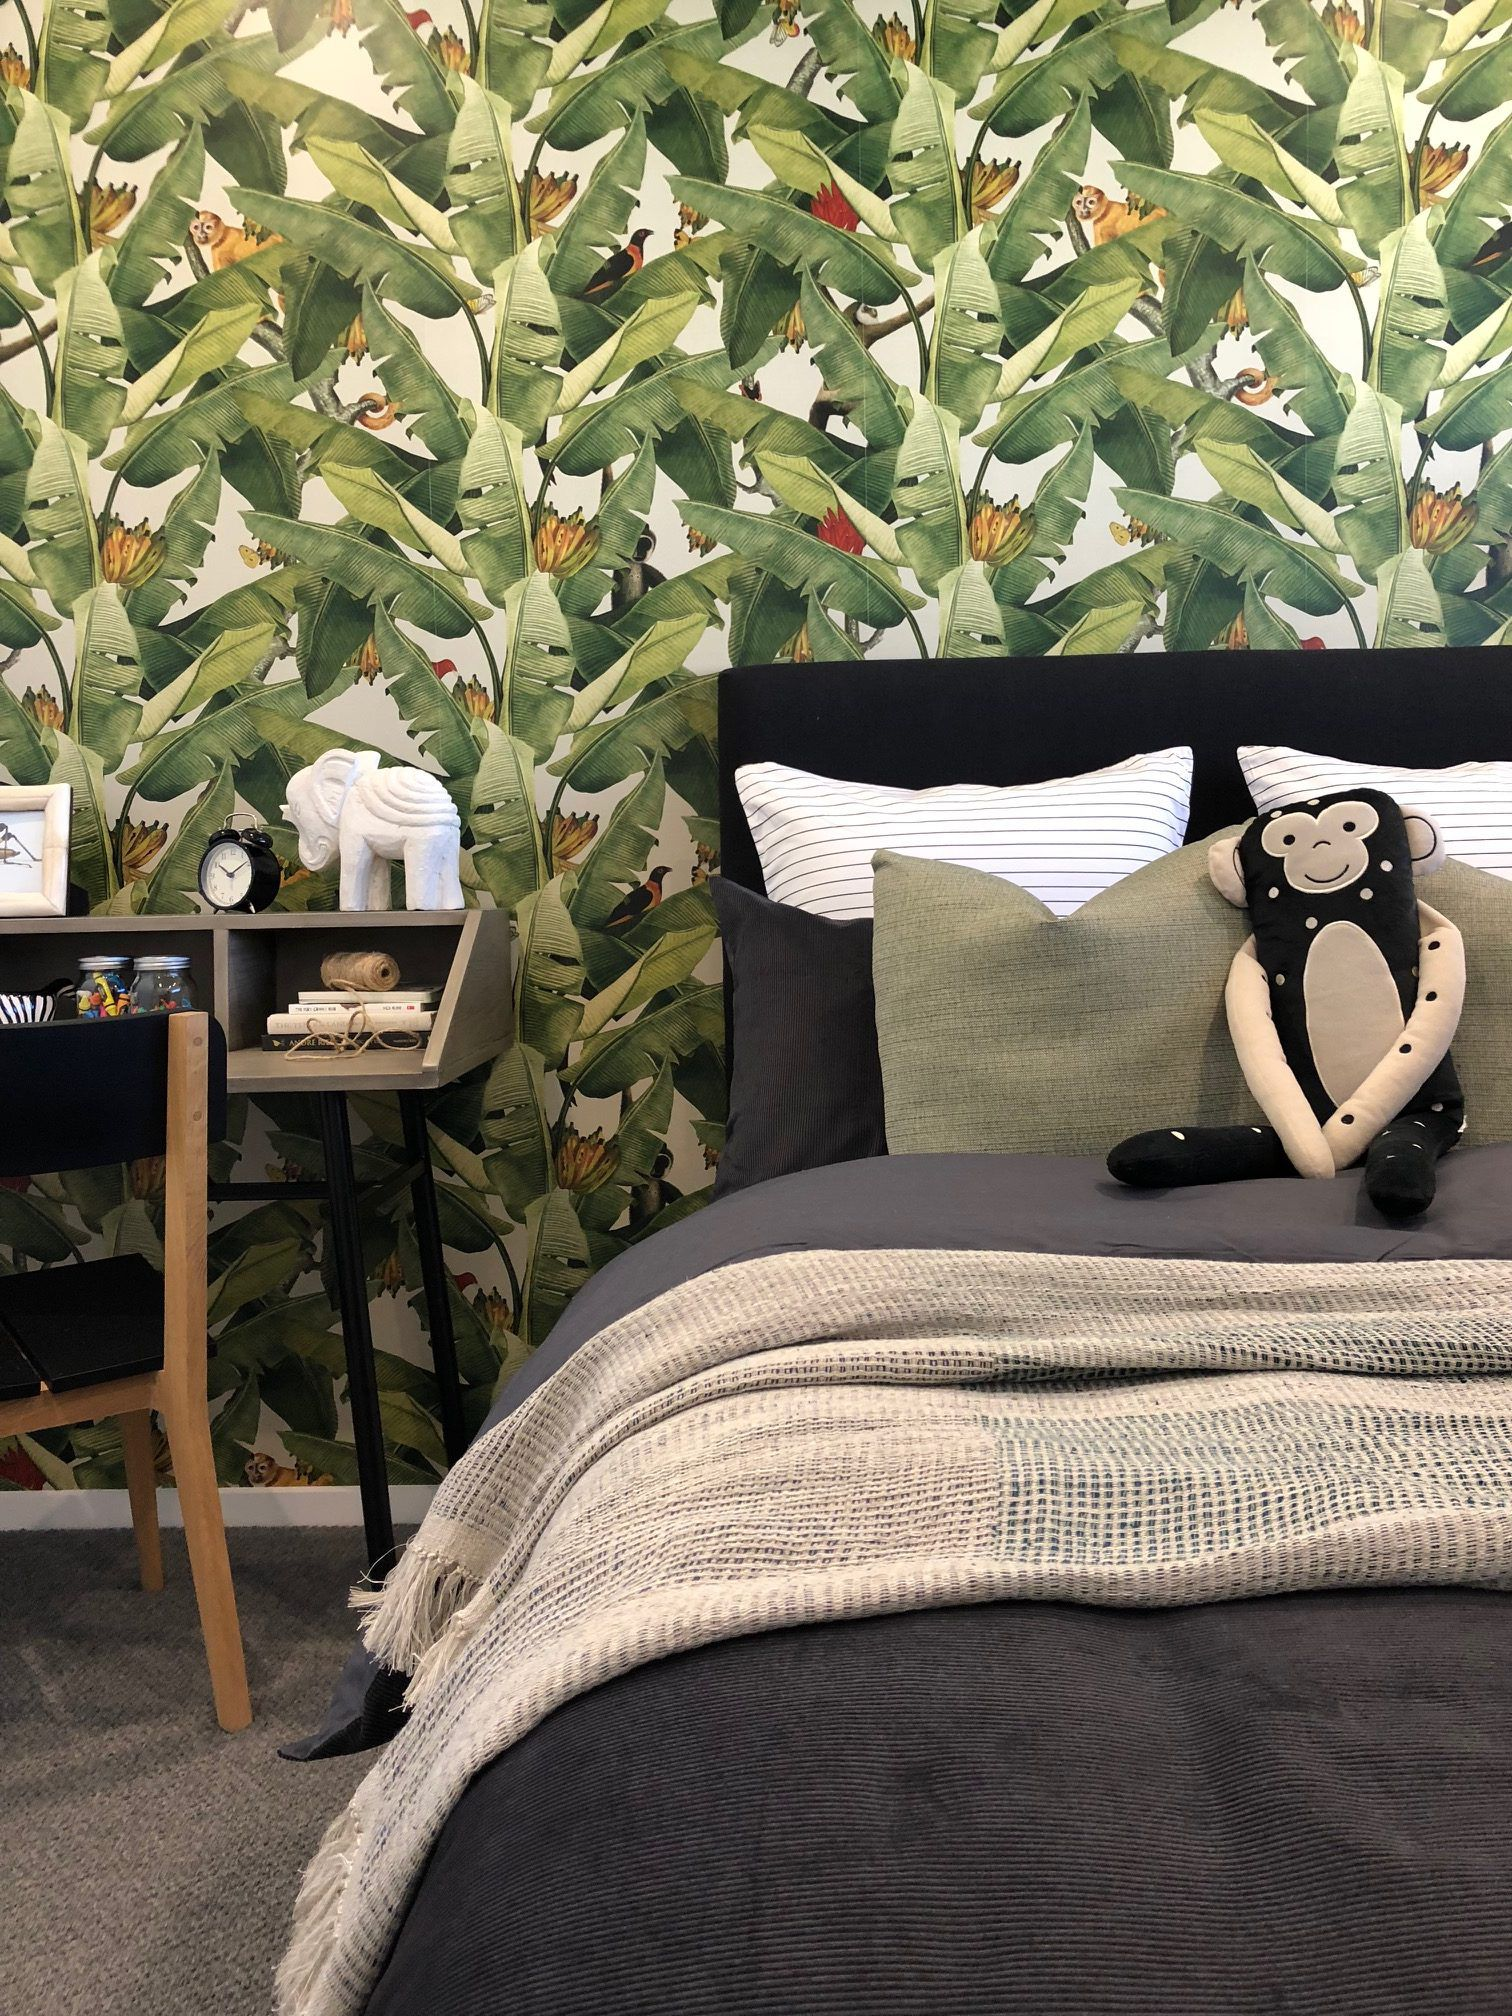 Jungle Fever Wallpaper • Kingdom Home • Tropical Bedroom • Kids Bedroom • Hannah • Urban Code